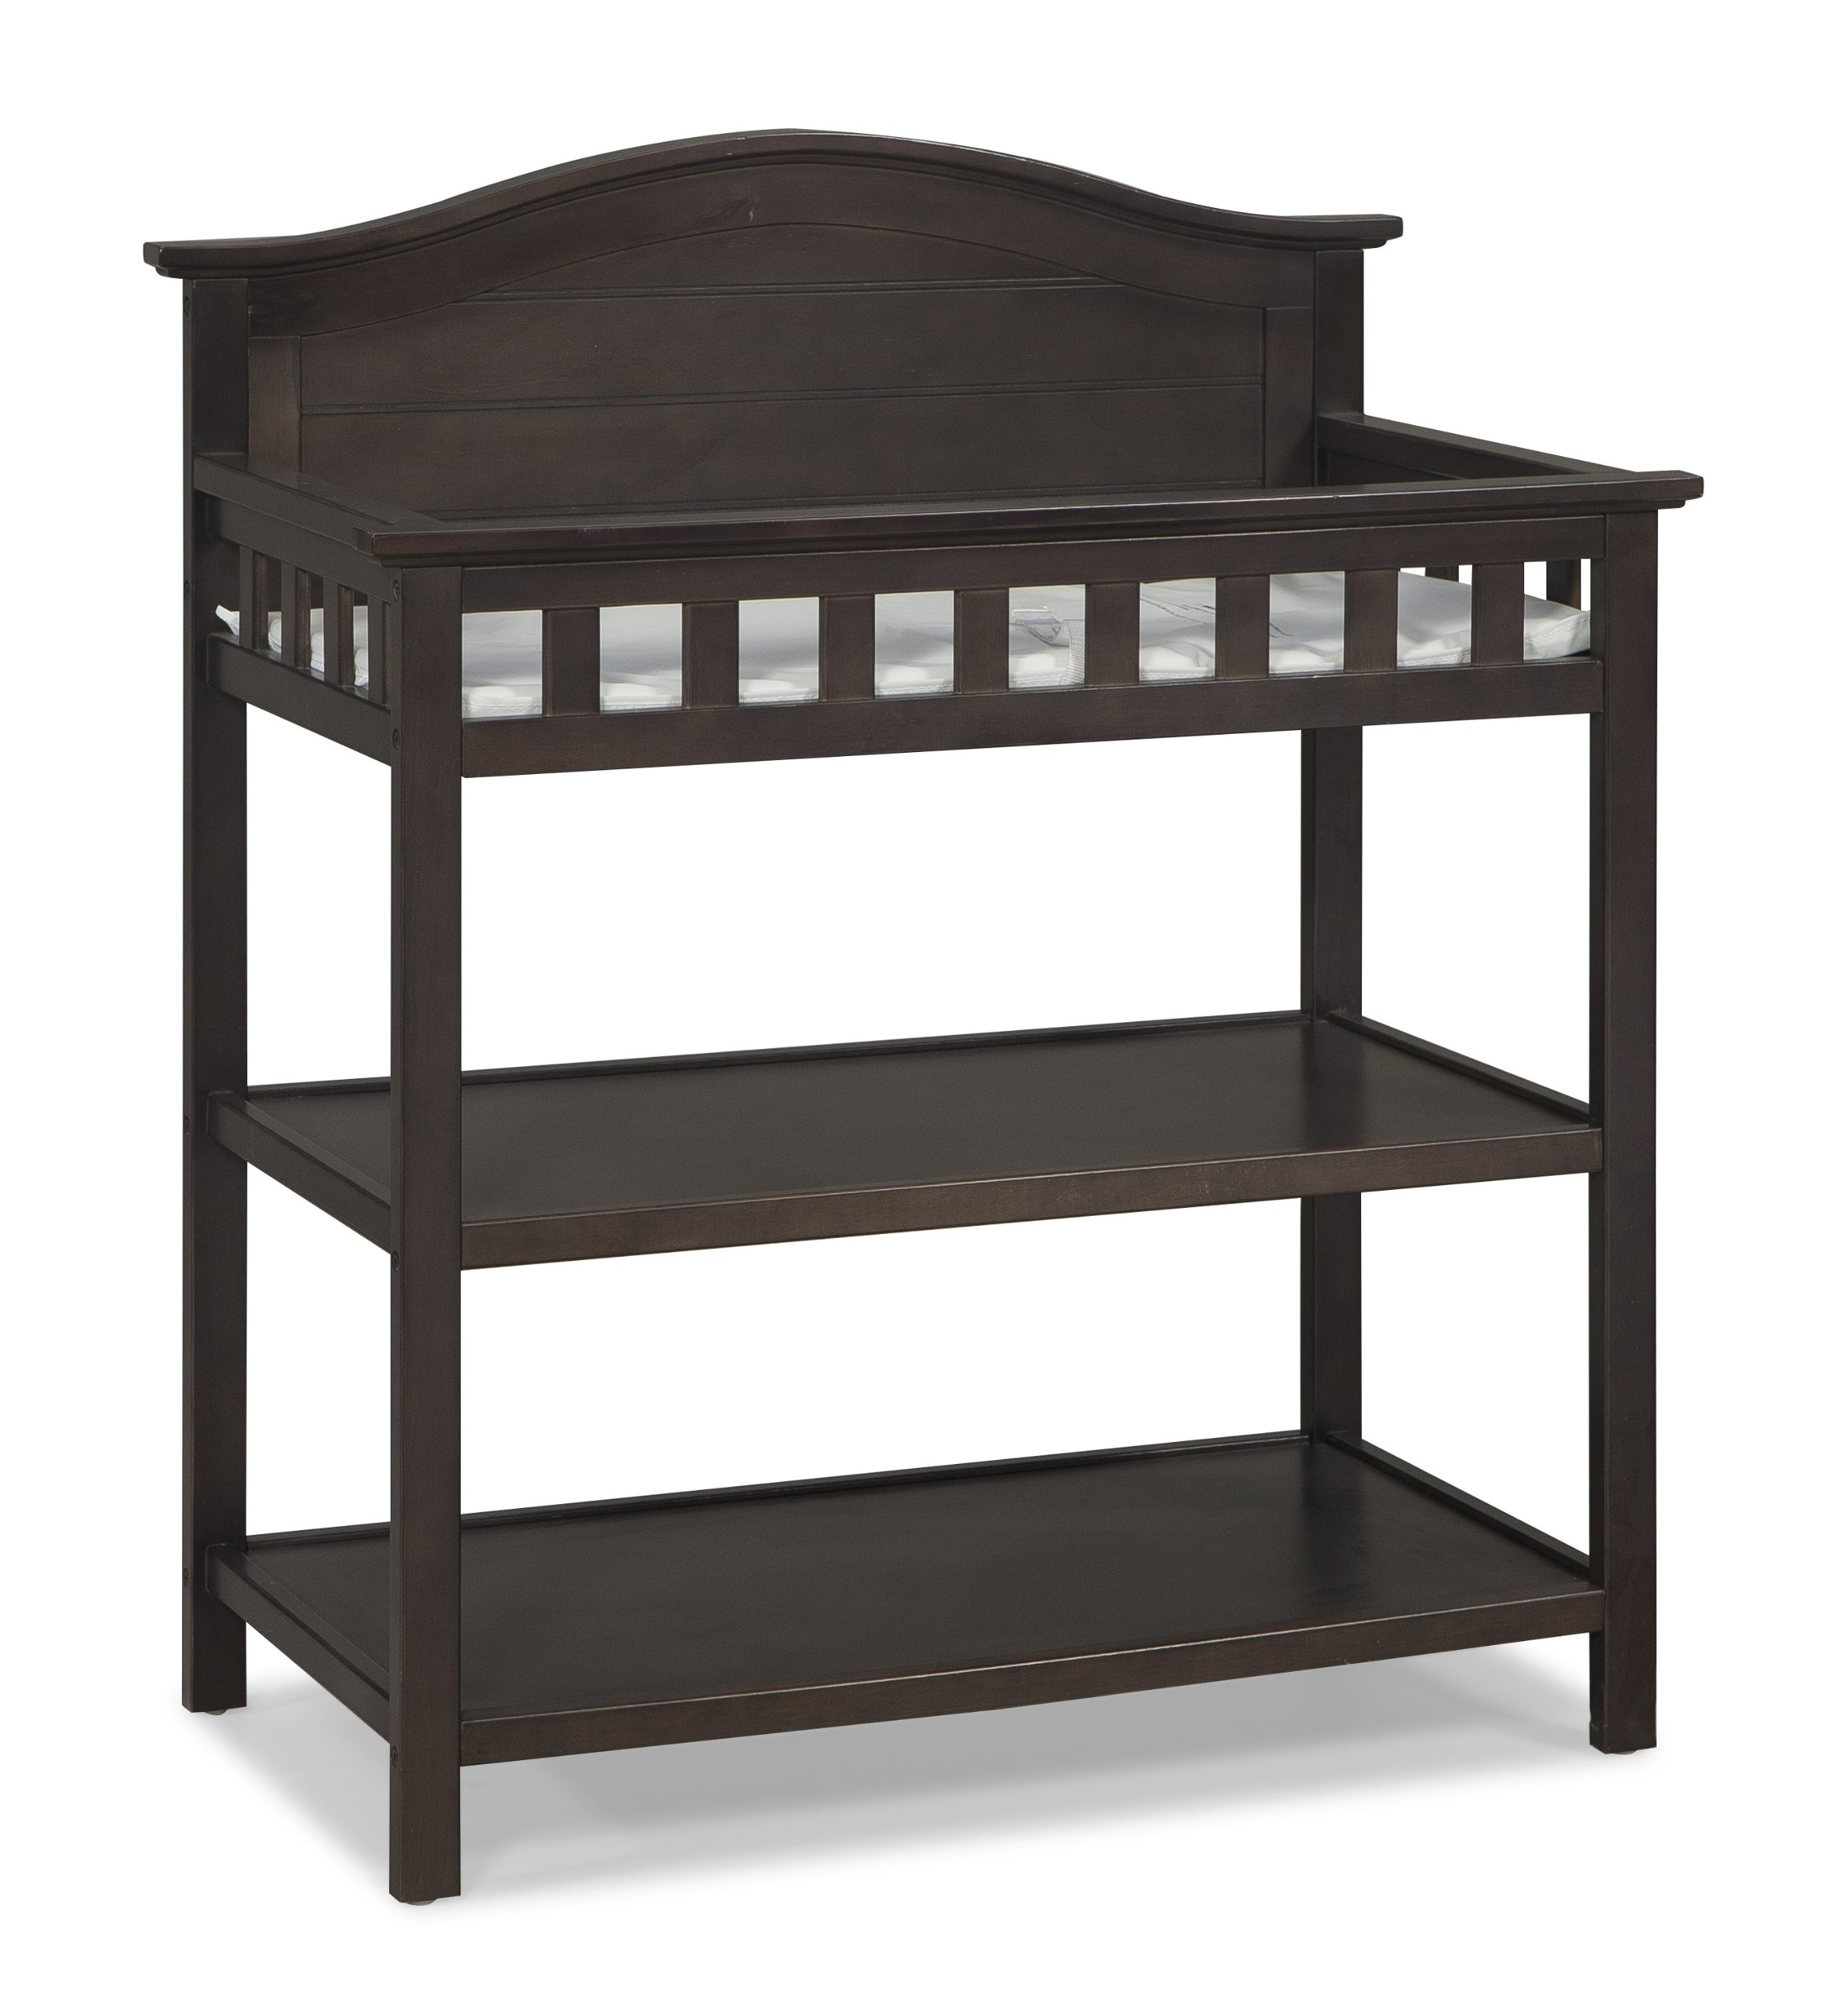 Thomasville Kids Southern Dunes Dressing Table with Pad, Espresso, Changing Table with Water Resistant Changing Pad, Safety Strap & Two Storage Shelves, for Infants & Toddlers by Thomasville Kids